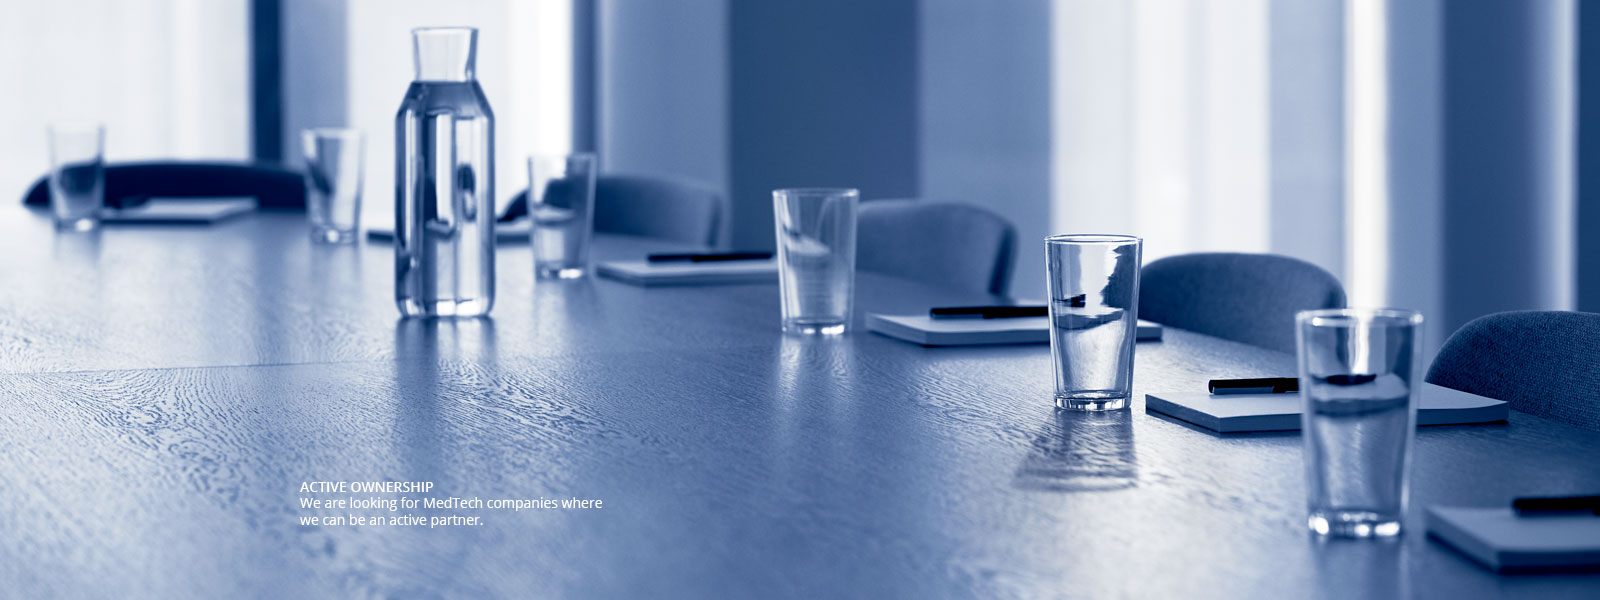 meeting-active-ownershipr-1600x500